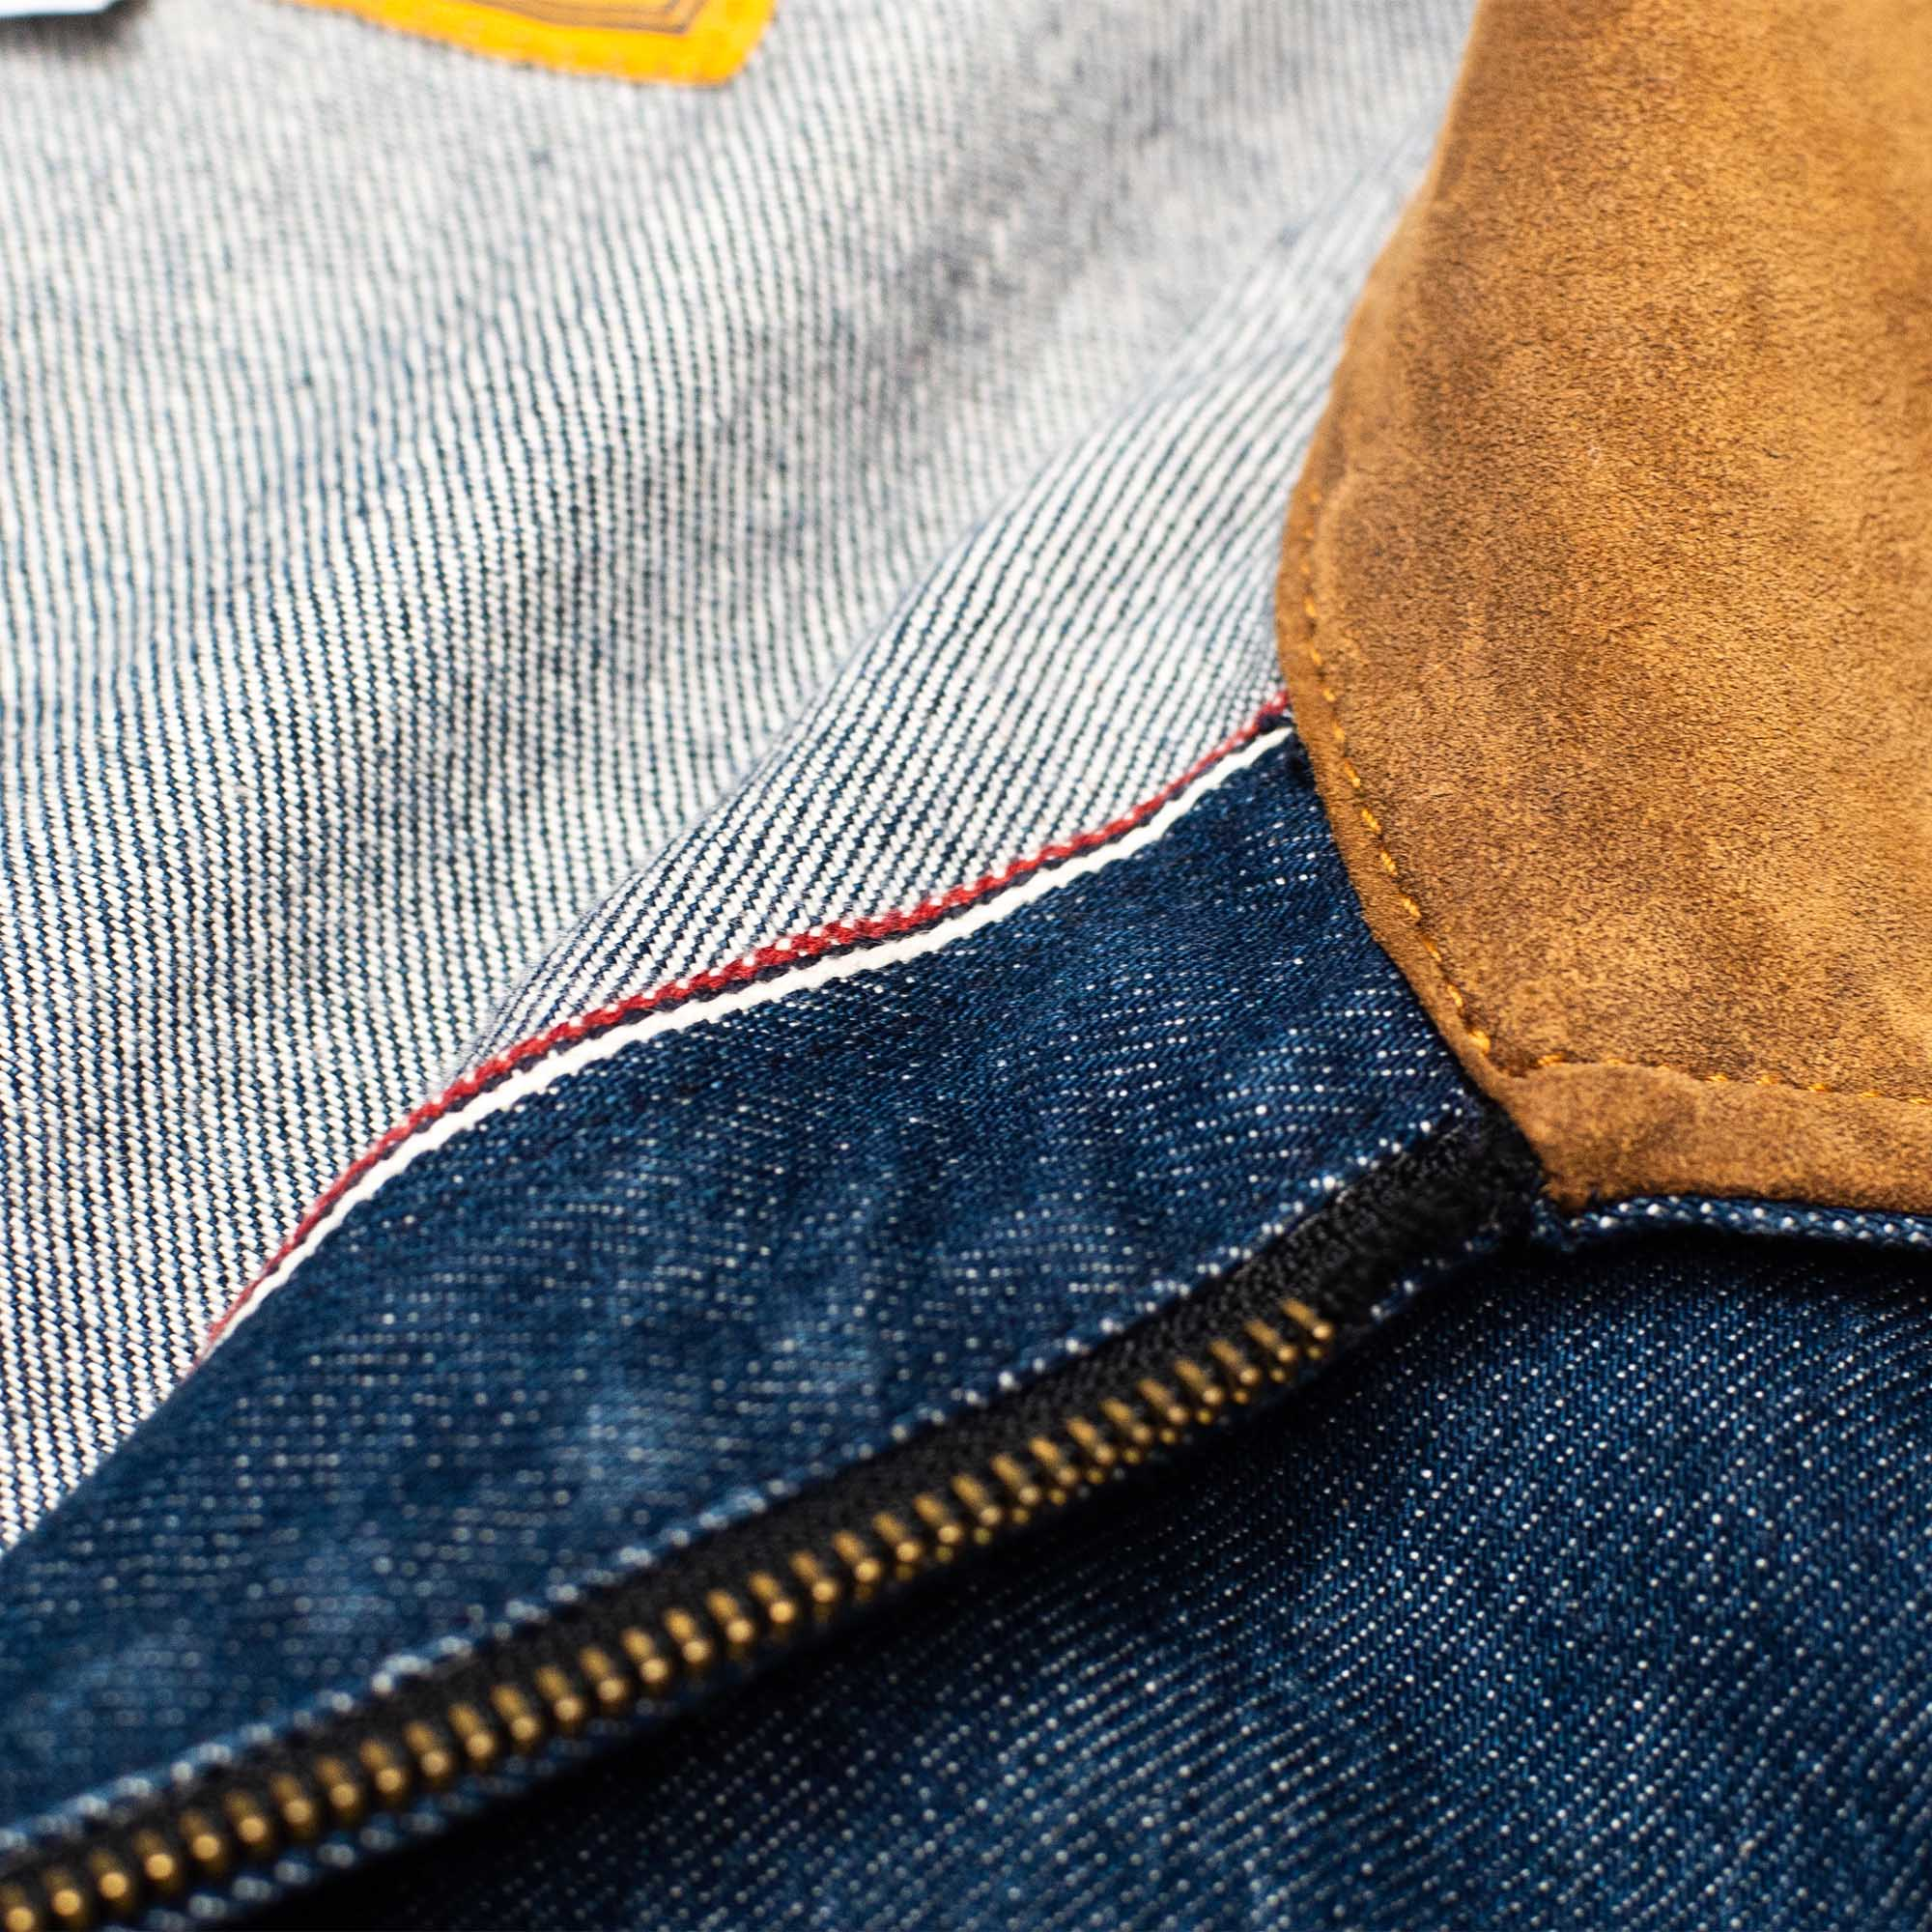 shangri-la-heritage-varenne-ranch-selvedge-candiani-denim-jacket-still-life-selvedge